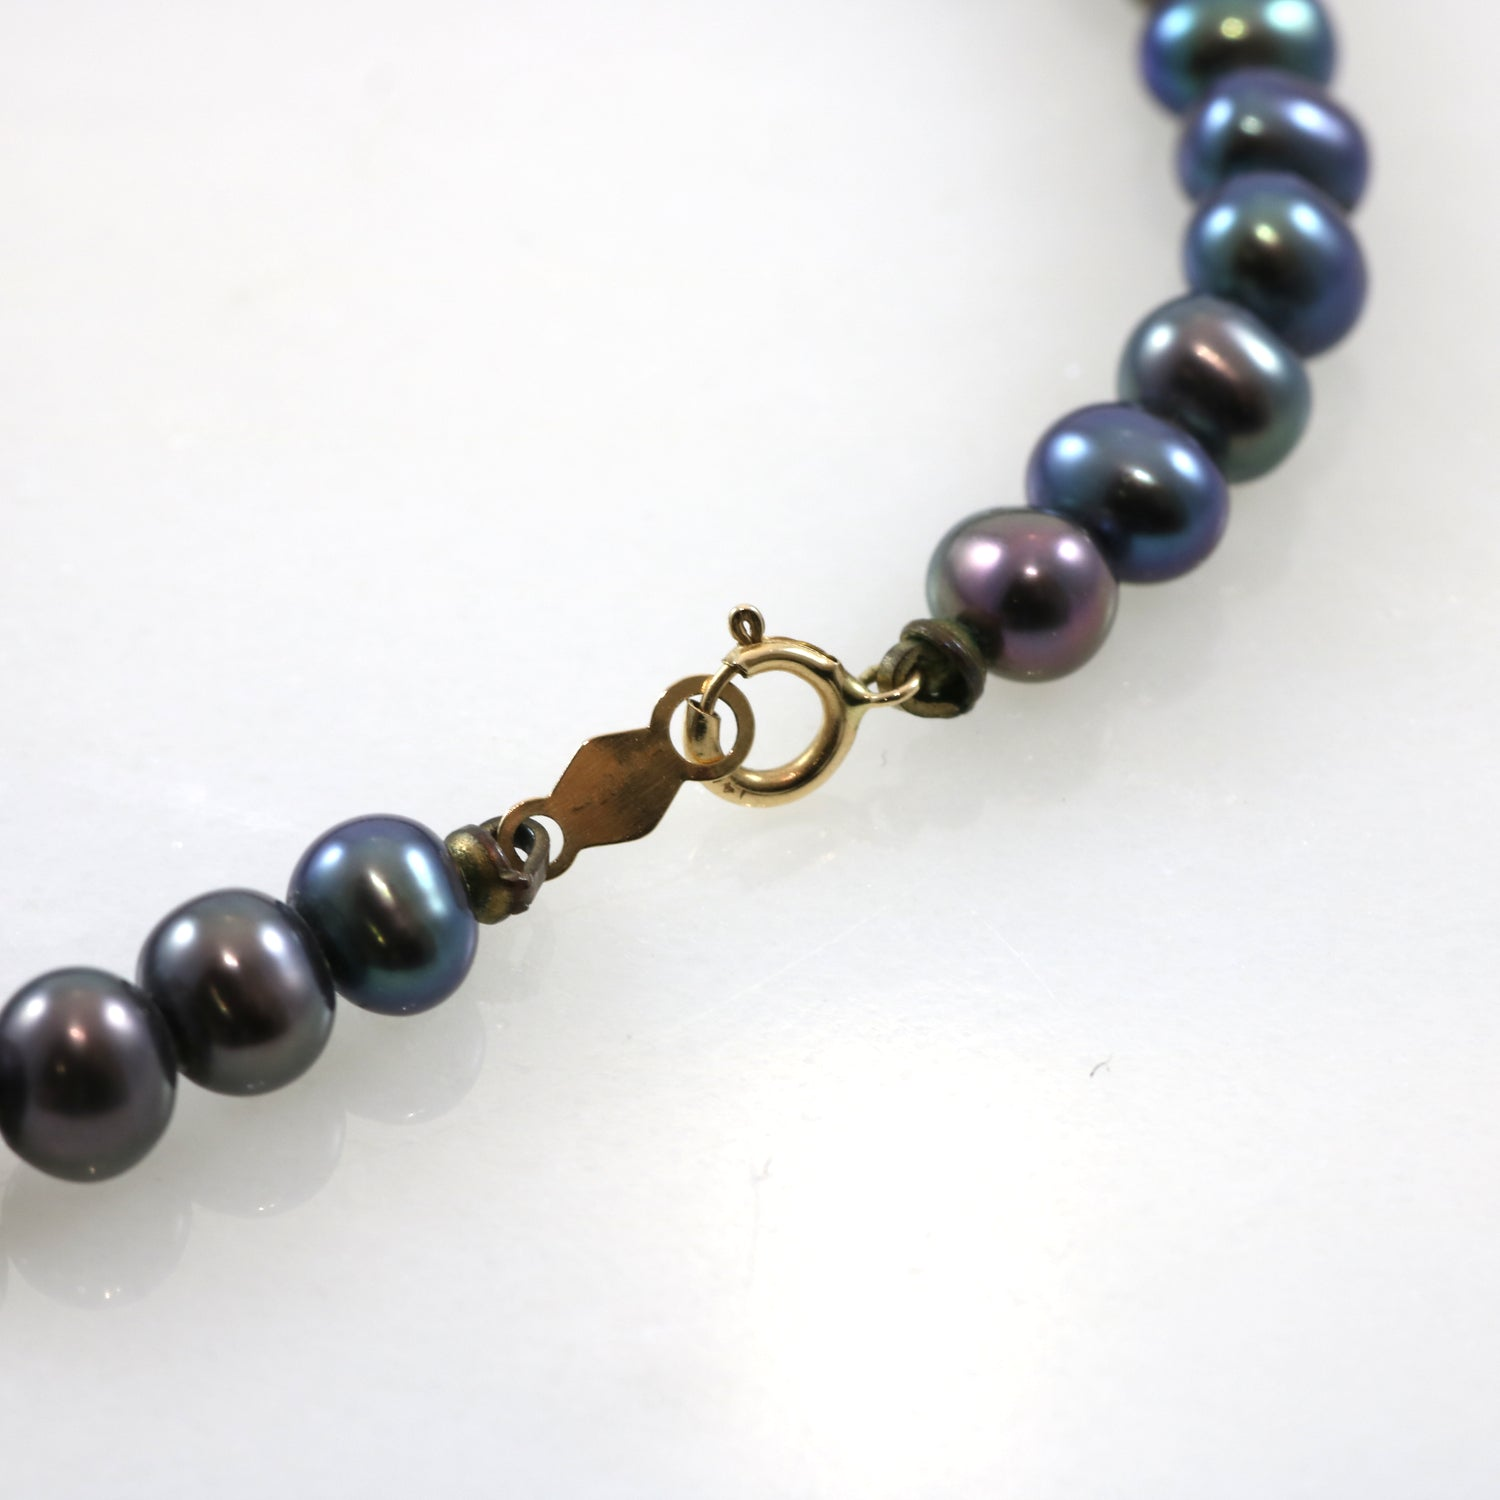 14k Gold Black Pearl Necklace & Bracelet Set